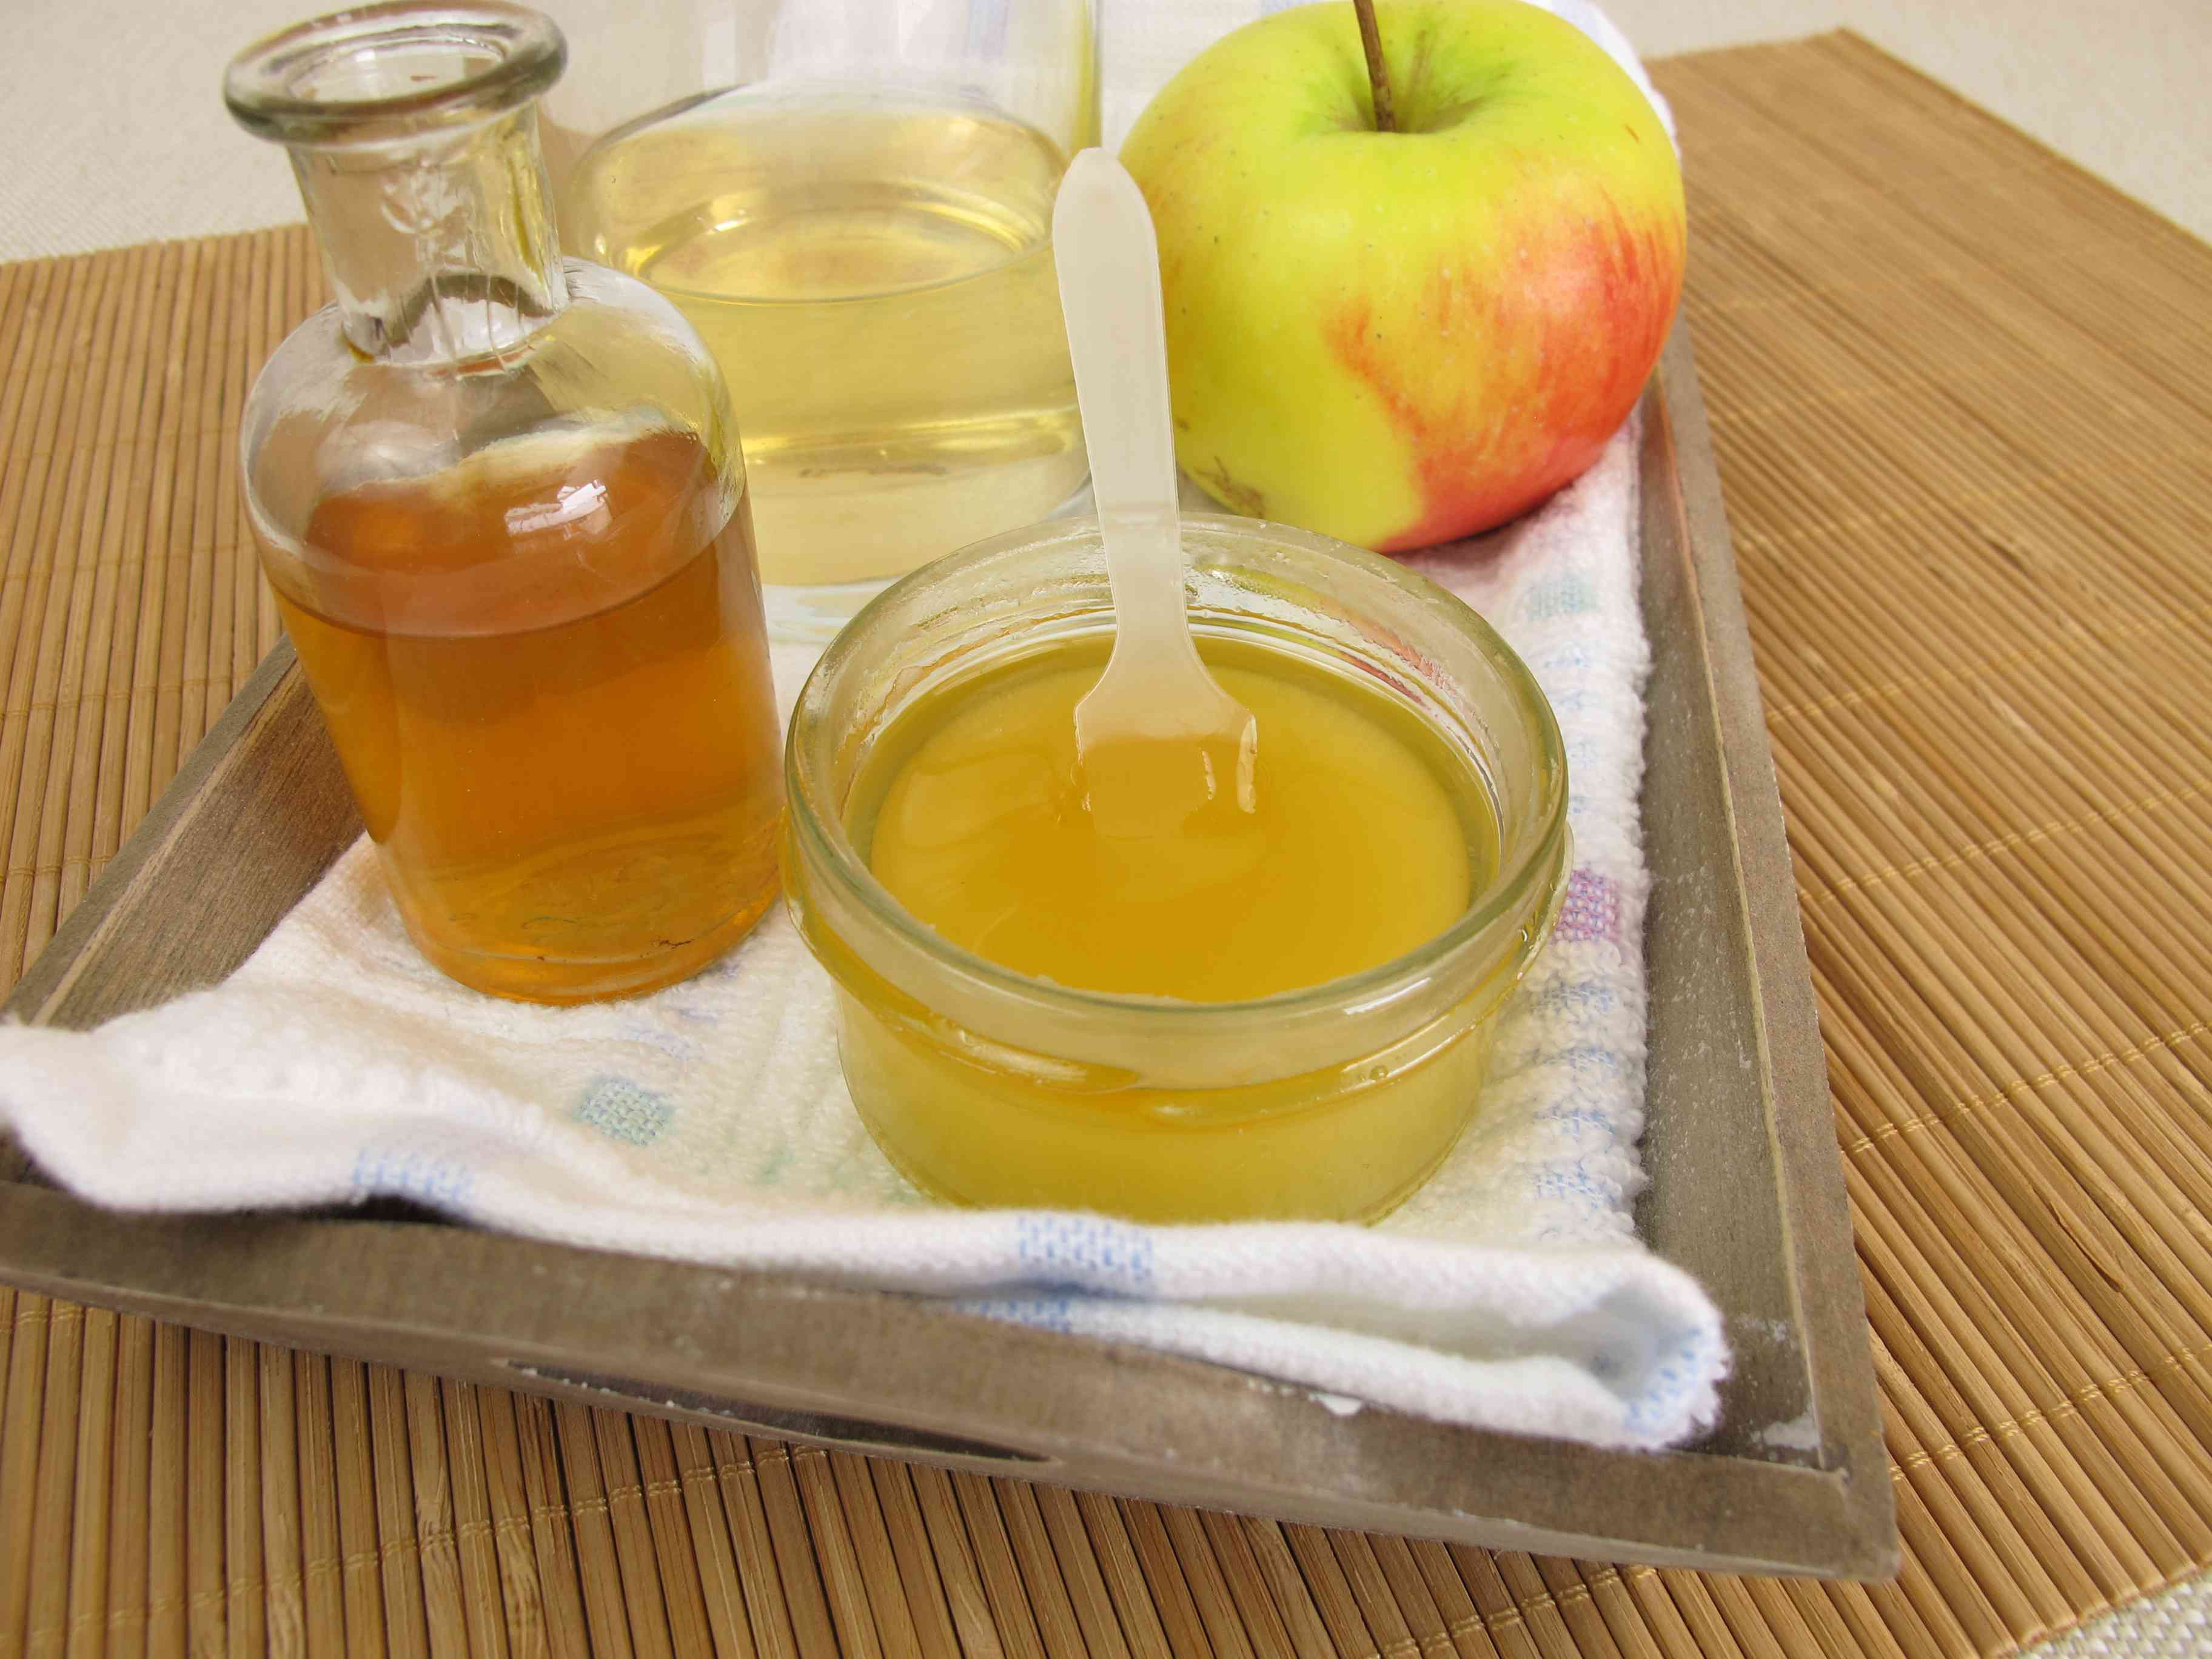 A bowl of apple cider vinegar mixed with water sits next to a bottle of apple cider vinegar and an apple in the background